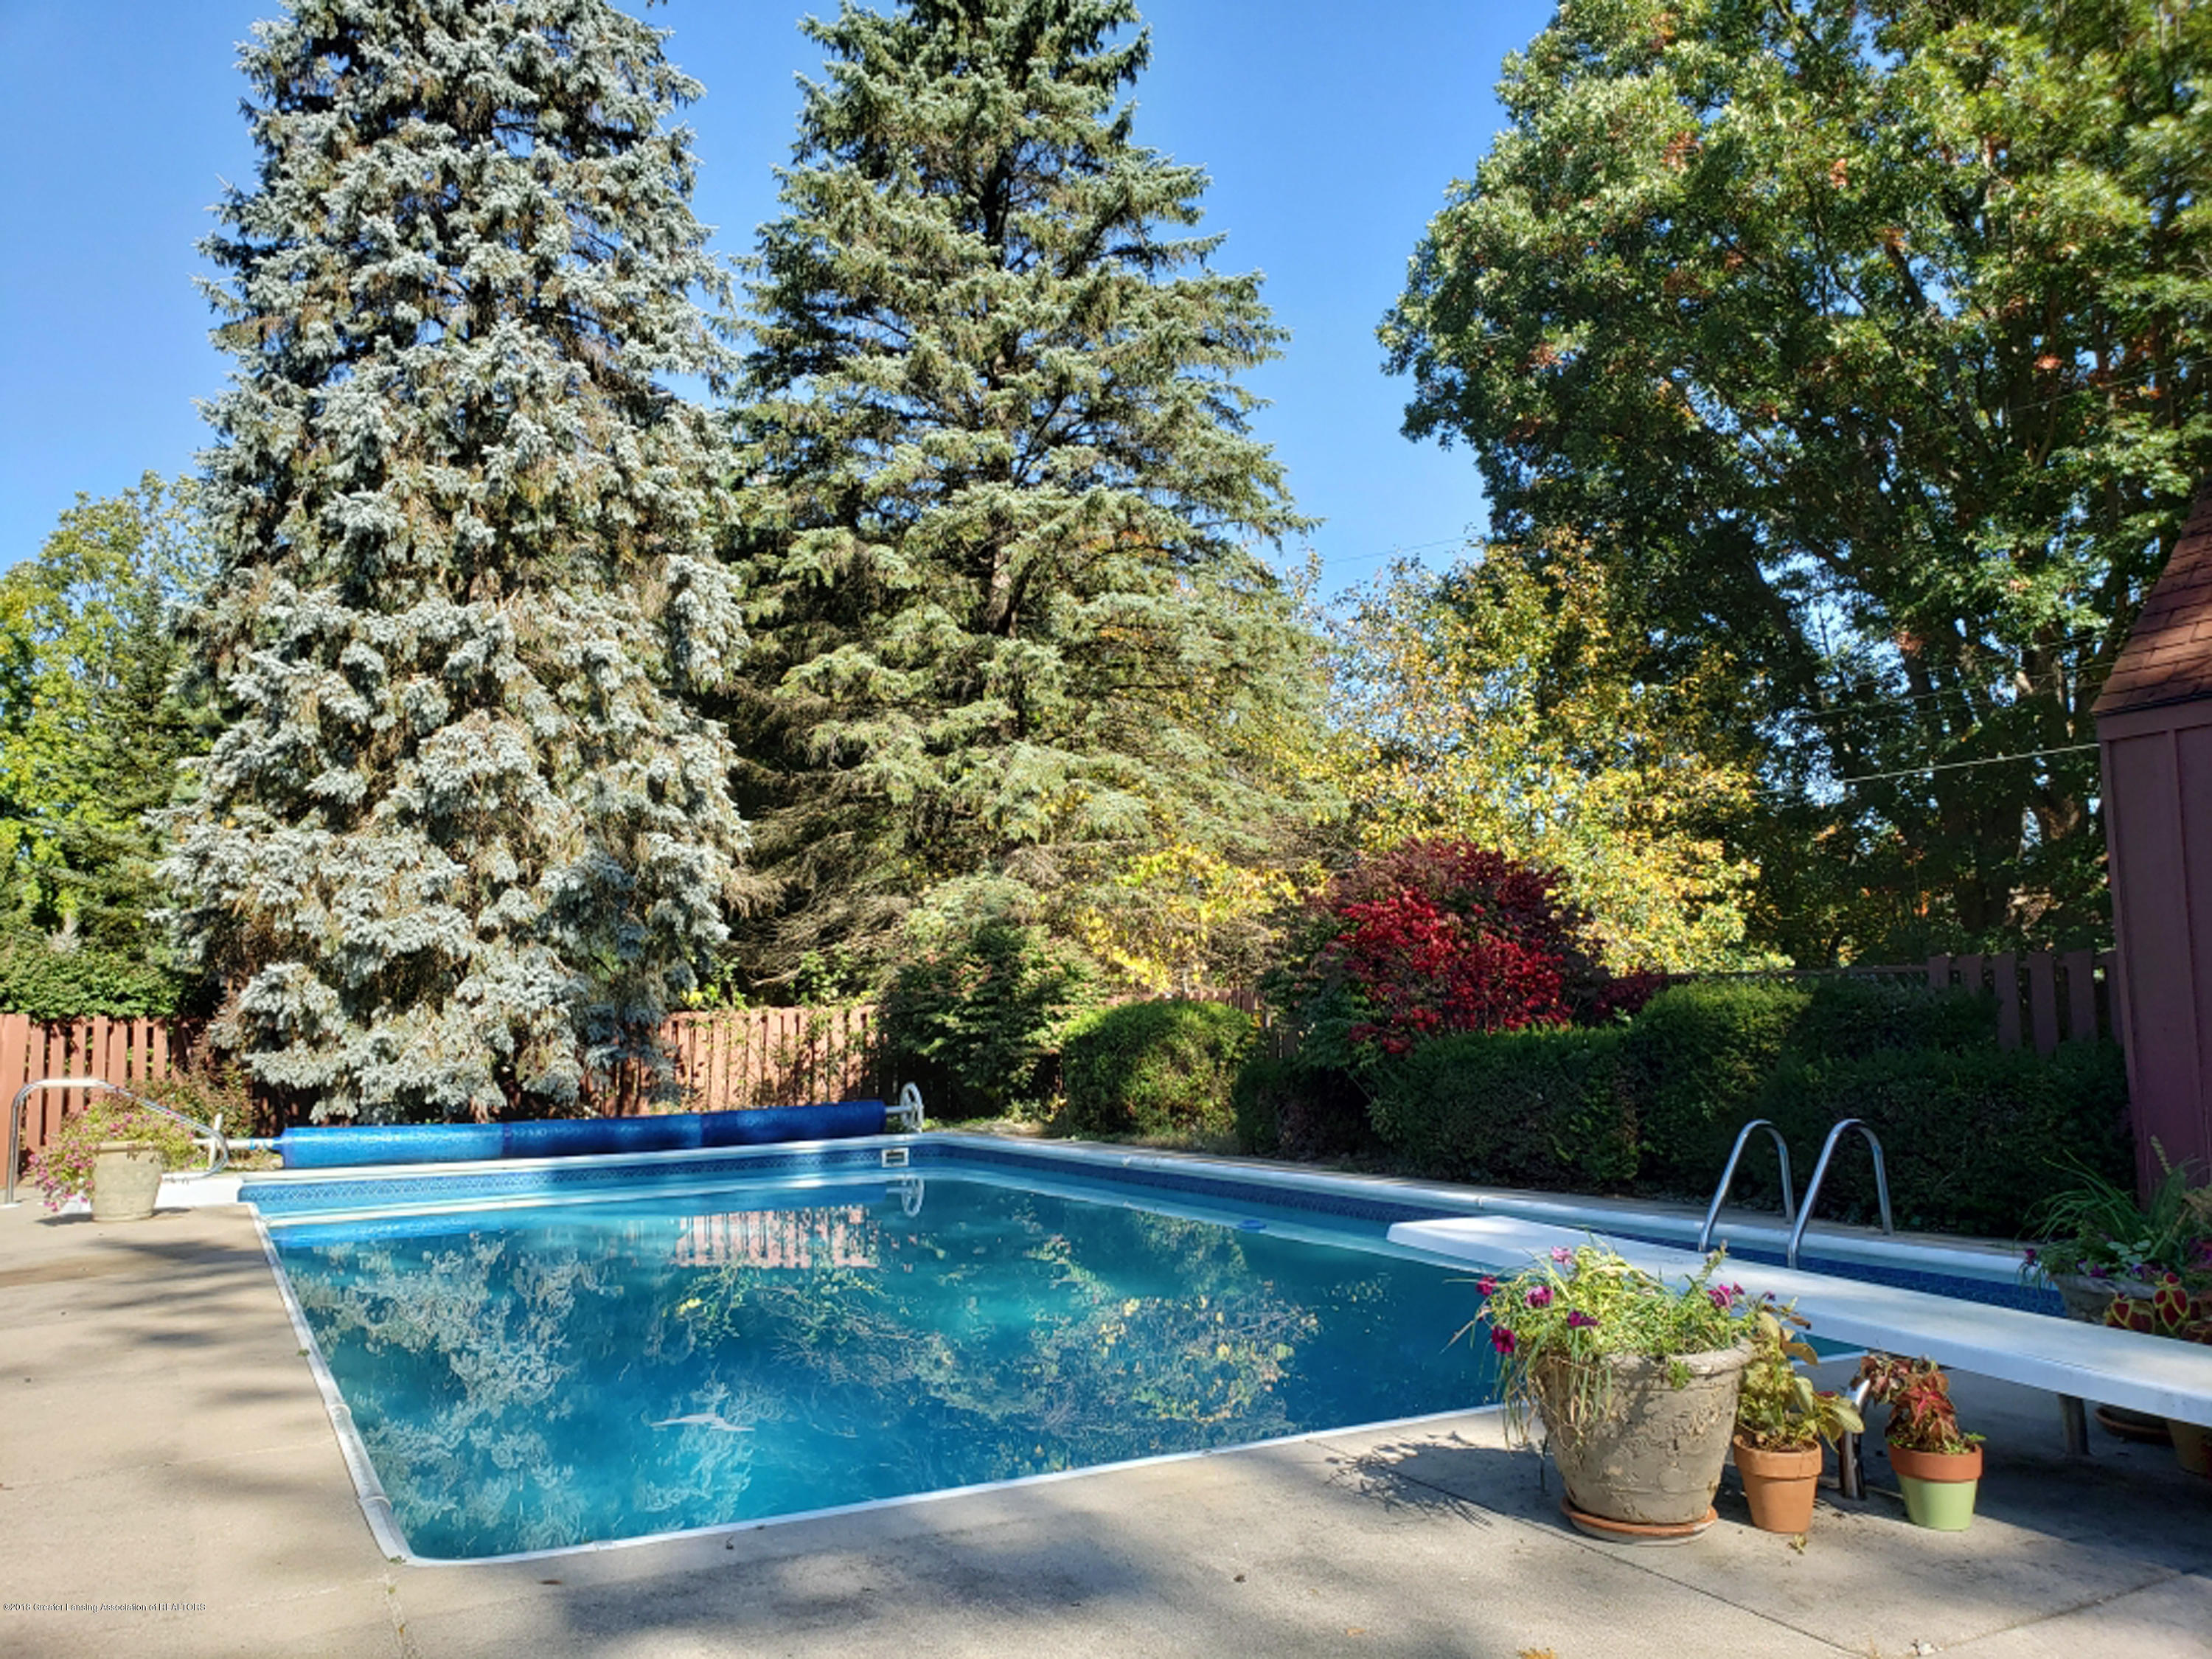 3596 E Hiawatha Dr - 3596 E Hiawatha shaded Pool - 9